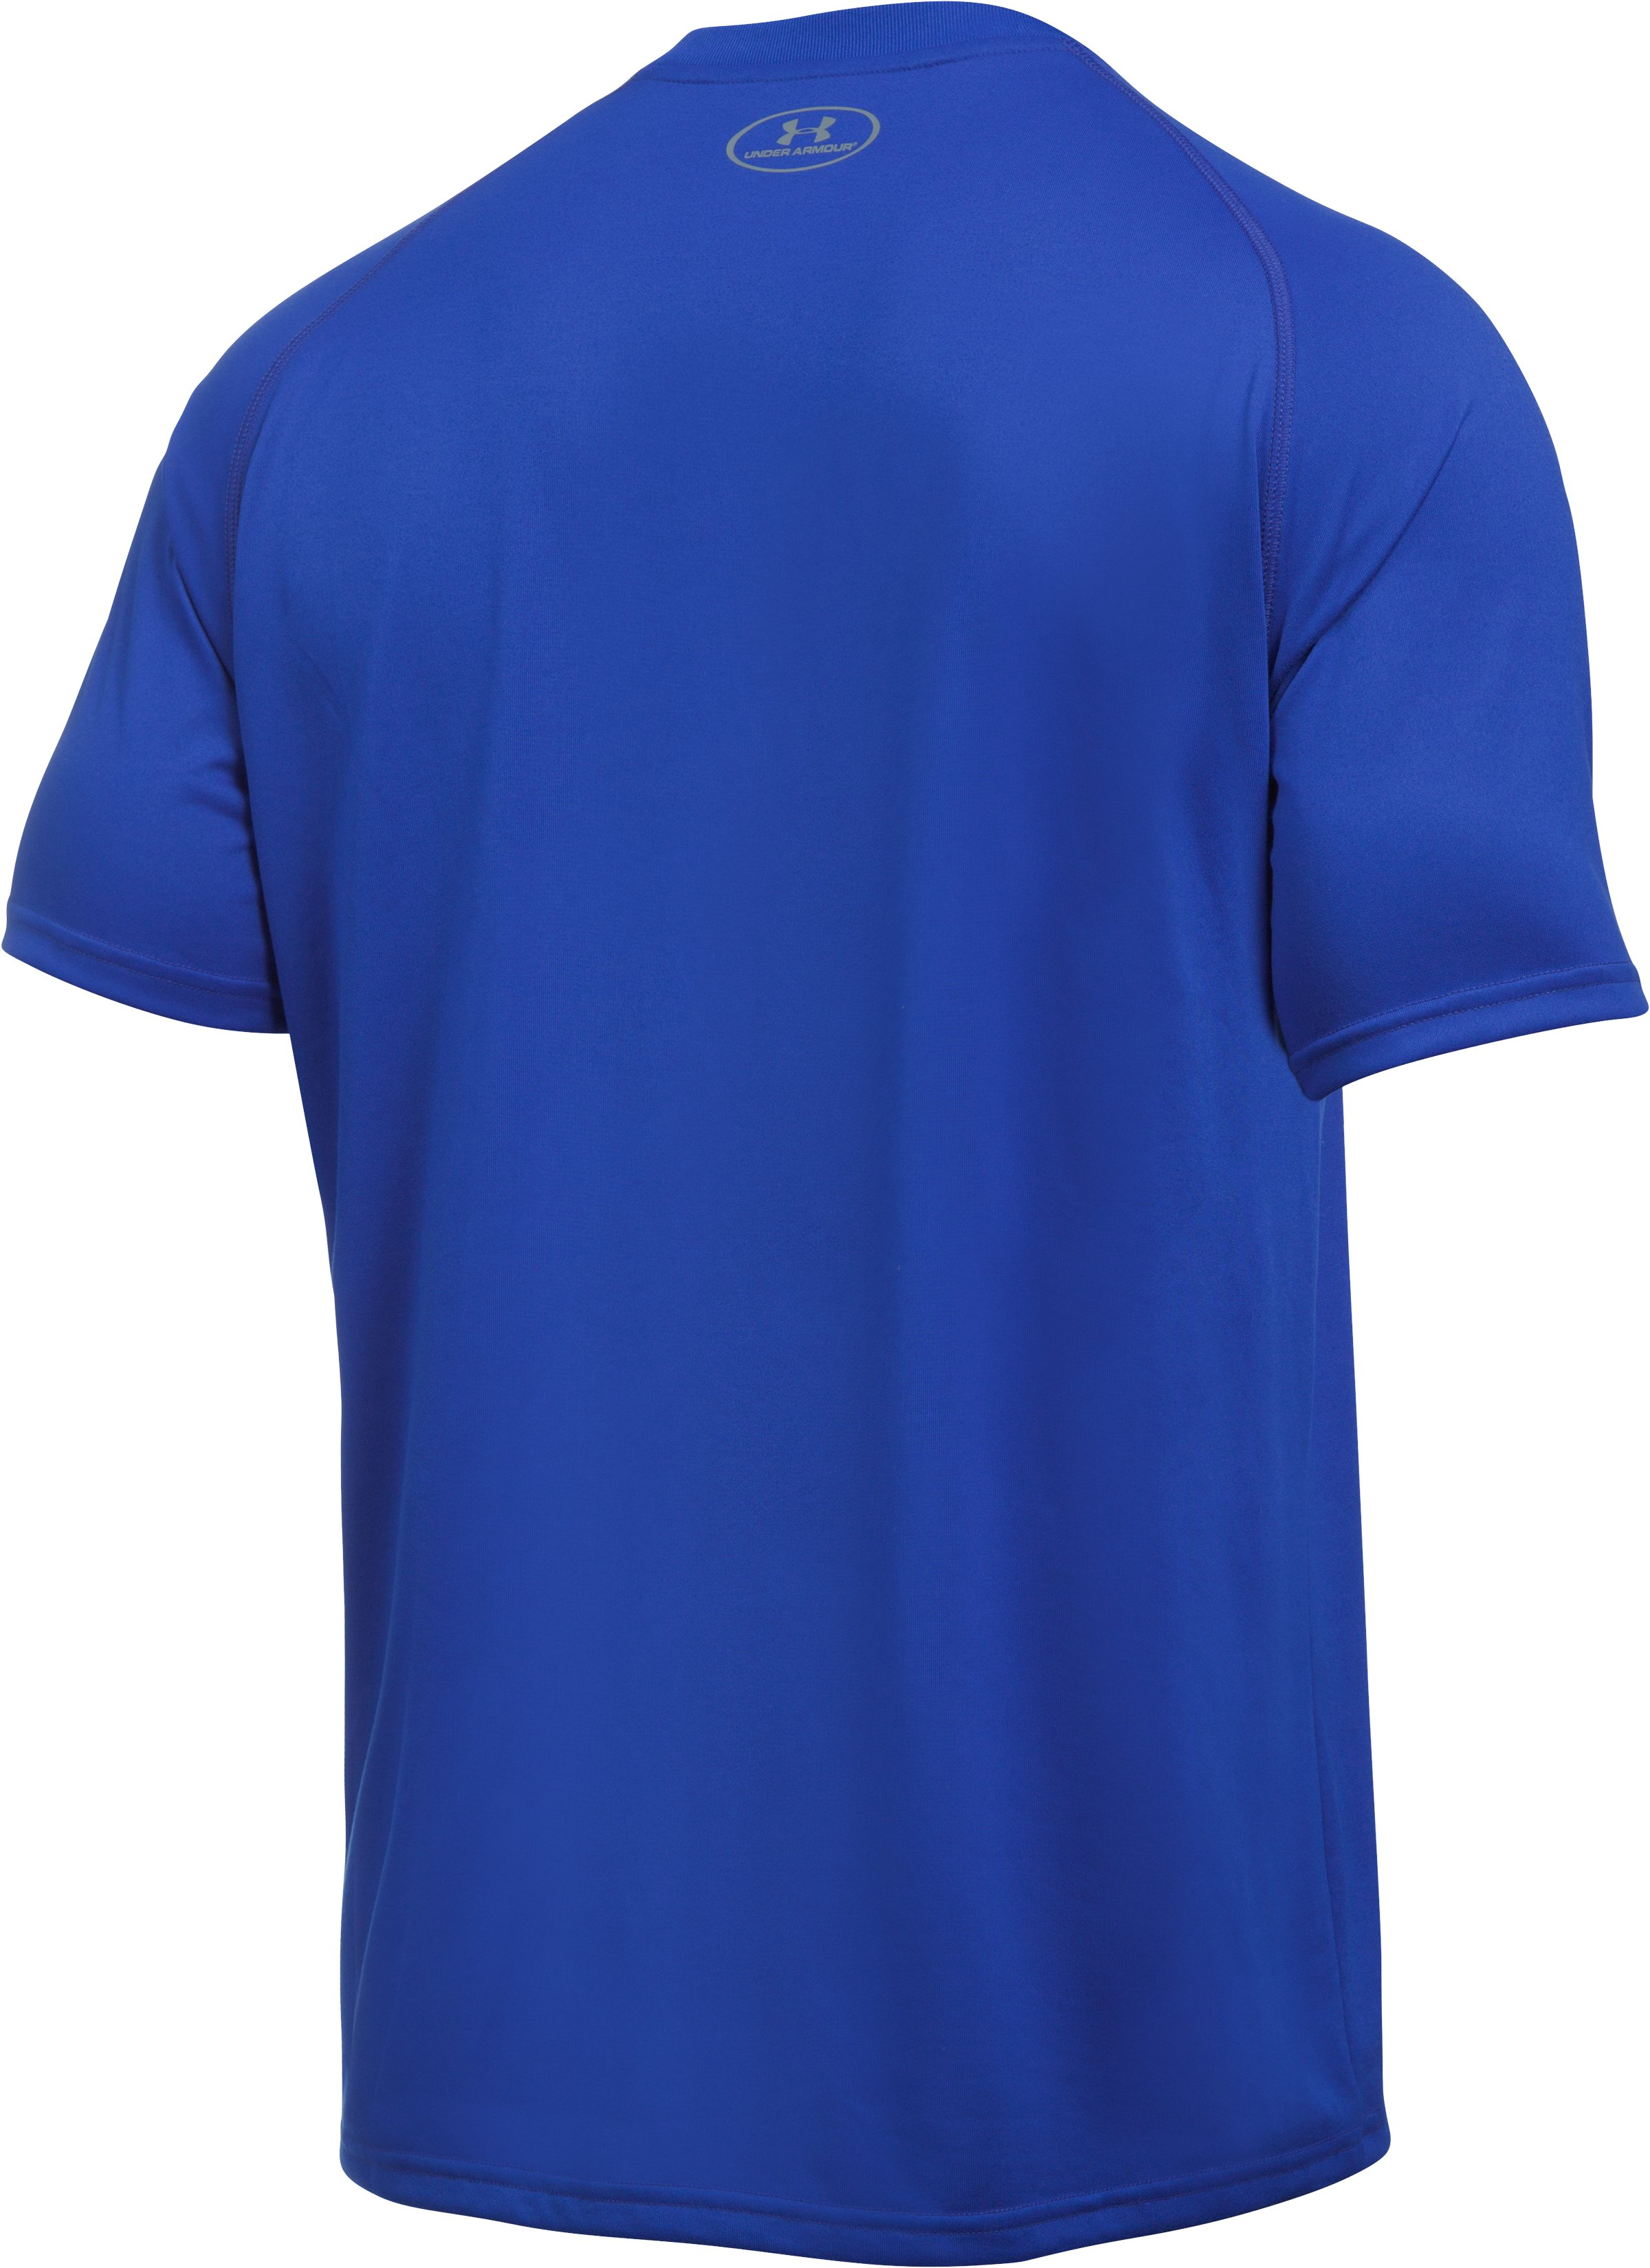 Men's Seton Hall UA Tech™ Team T-Shirt, Royal